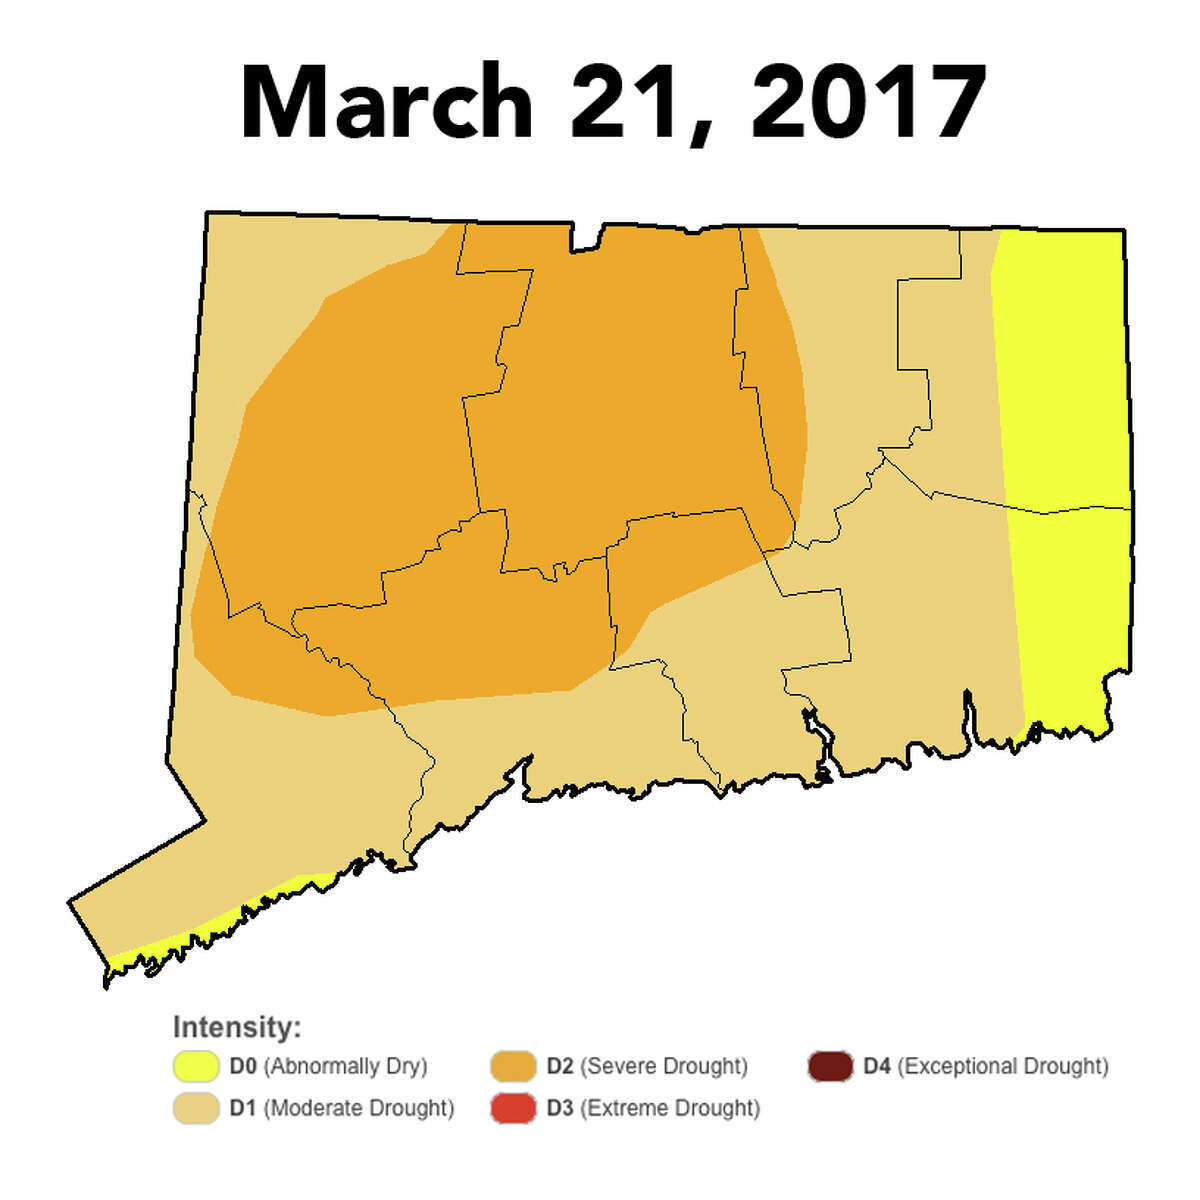 U.S. Drought Monitor released on Thursday, March 23, 2017, a map showing improved drought conditions across Connecticut. Scroll ahead for a month-by-month look at the drought in Connecticut.